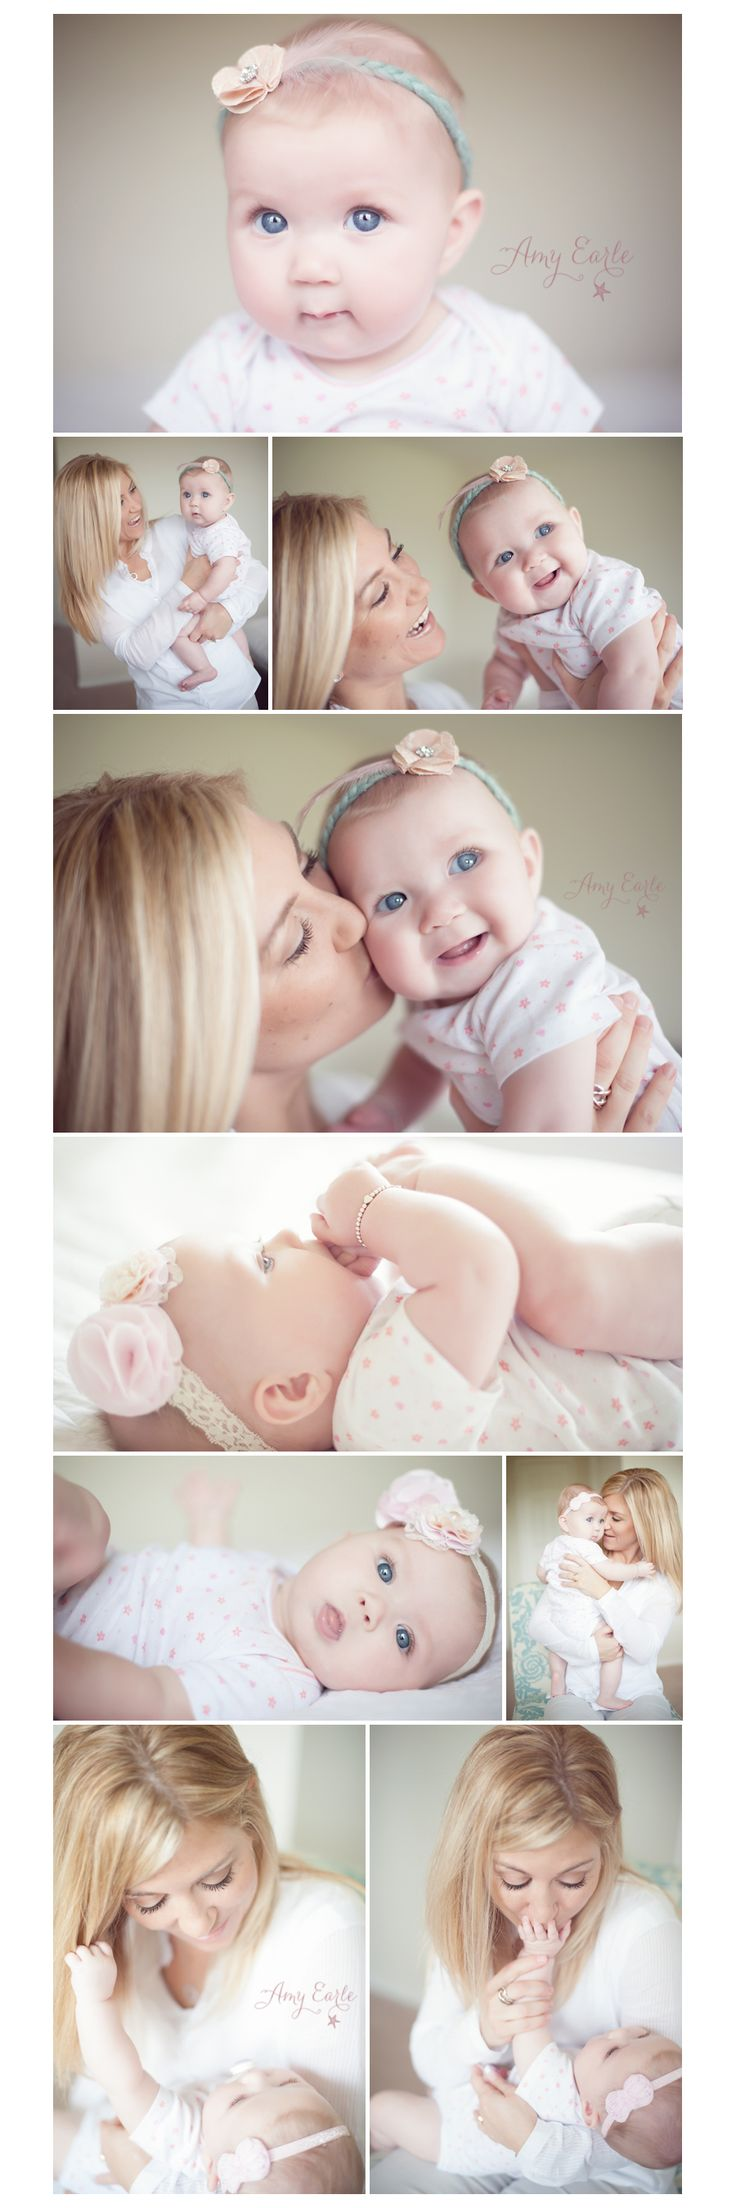 CUTE BABY!!!!! Six month old baby, lifestyle photography session